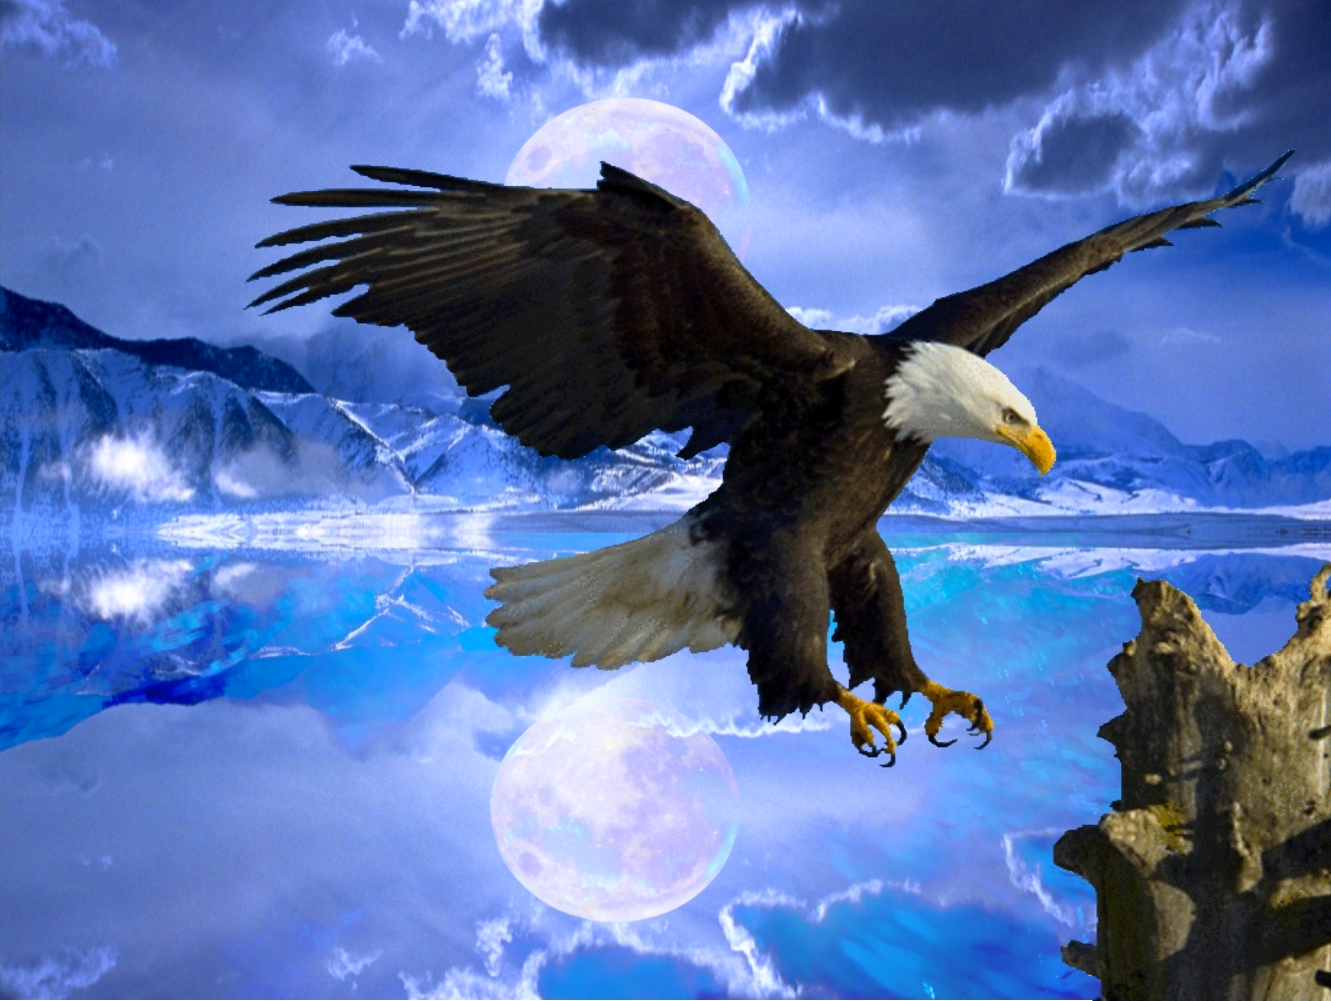 Www 3d Name Wallpaper Fabulous And Amazing Eagle Wallpapers In Hd For More